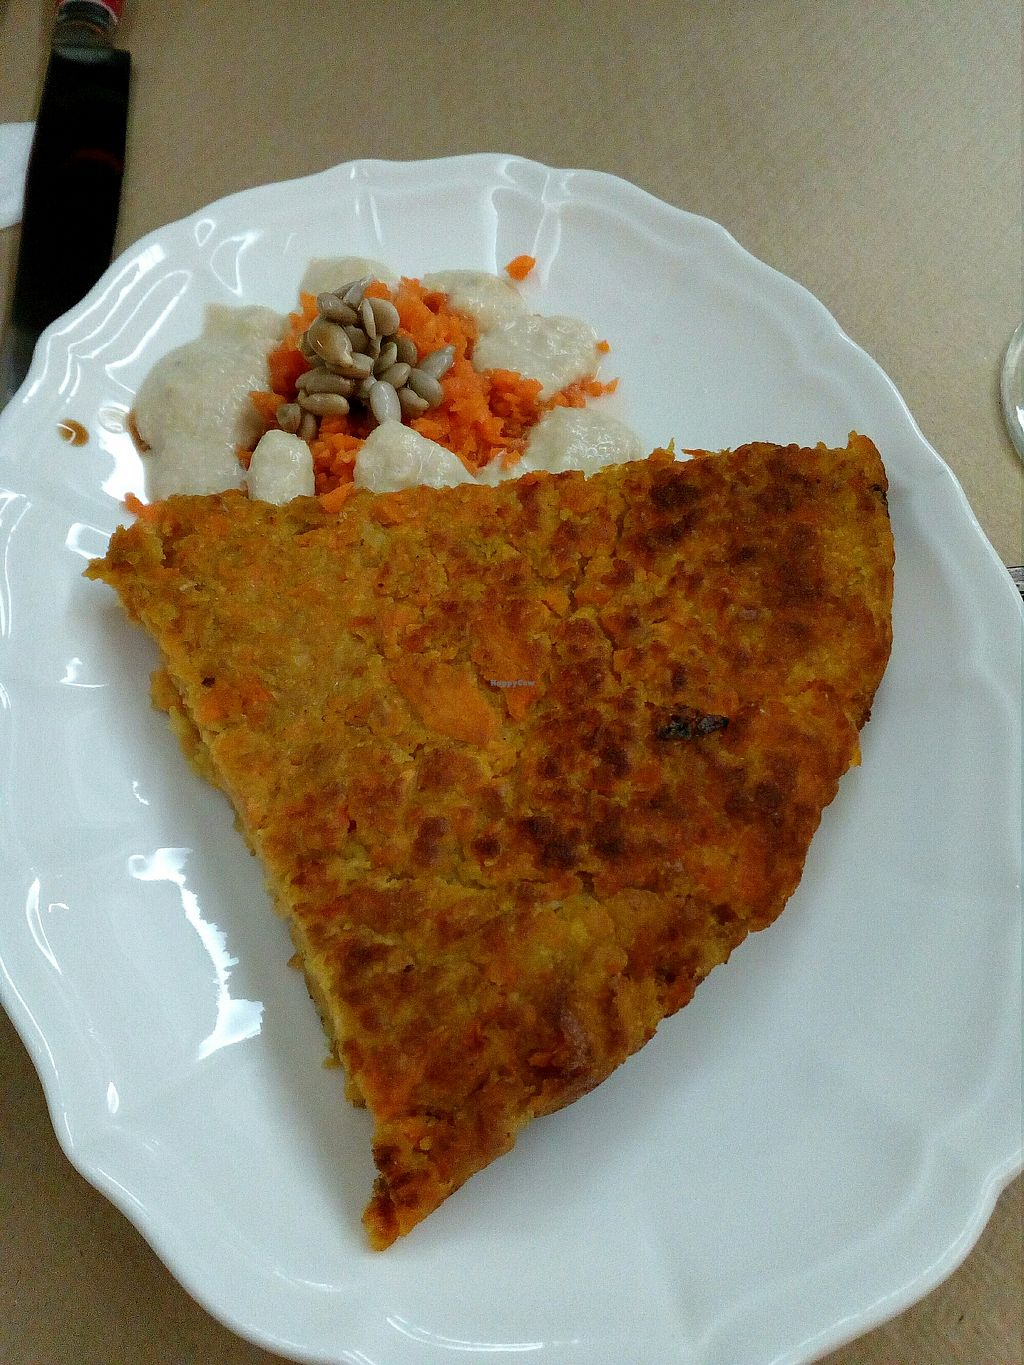 "Photo of Vitale  by <a href=""/members/profile/wyrd"">wyrd</a> <br/>vegan tortilla with carrots <br/> April 24, 2018  - <a href='/contact/abuse/image/109061/390624'>Report</a>"